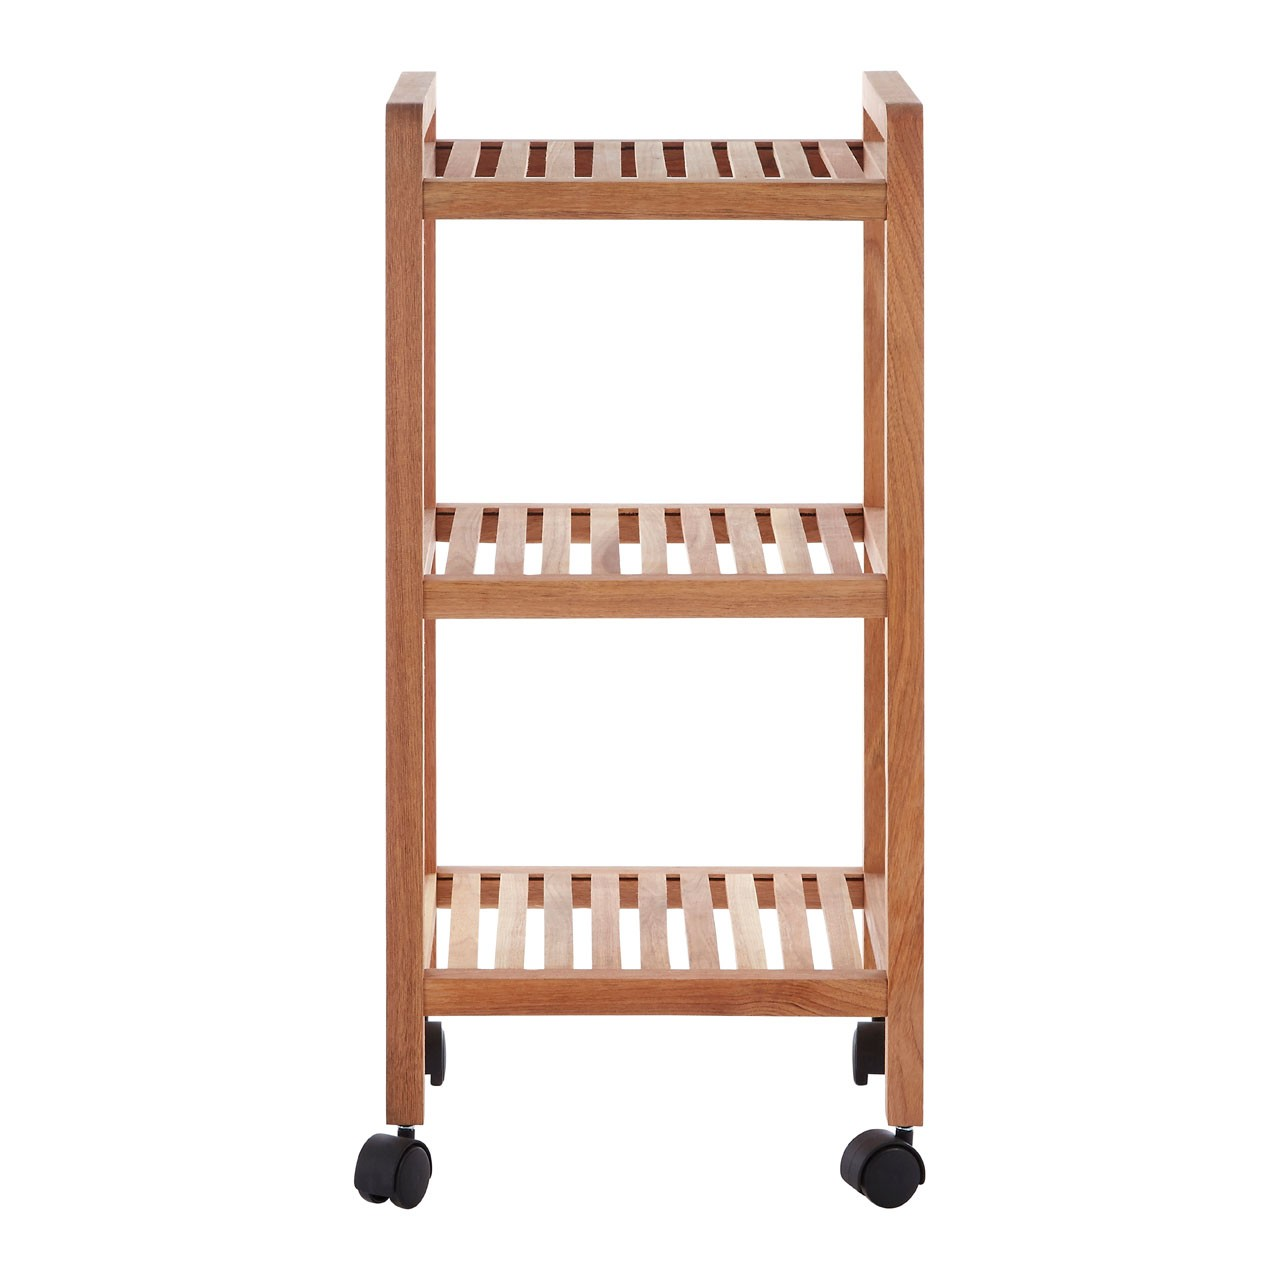 3 Tier Walnut Wood Bathroom Trolley